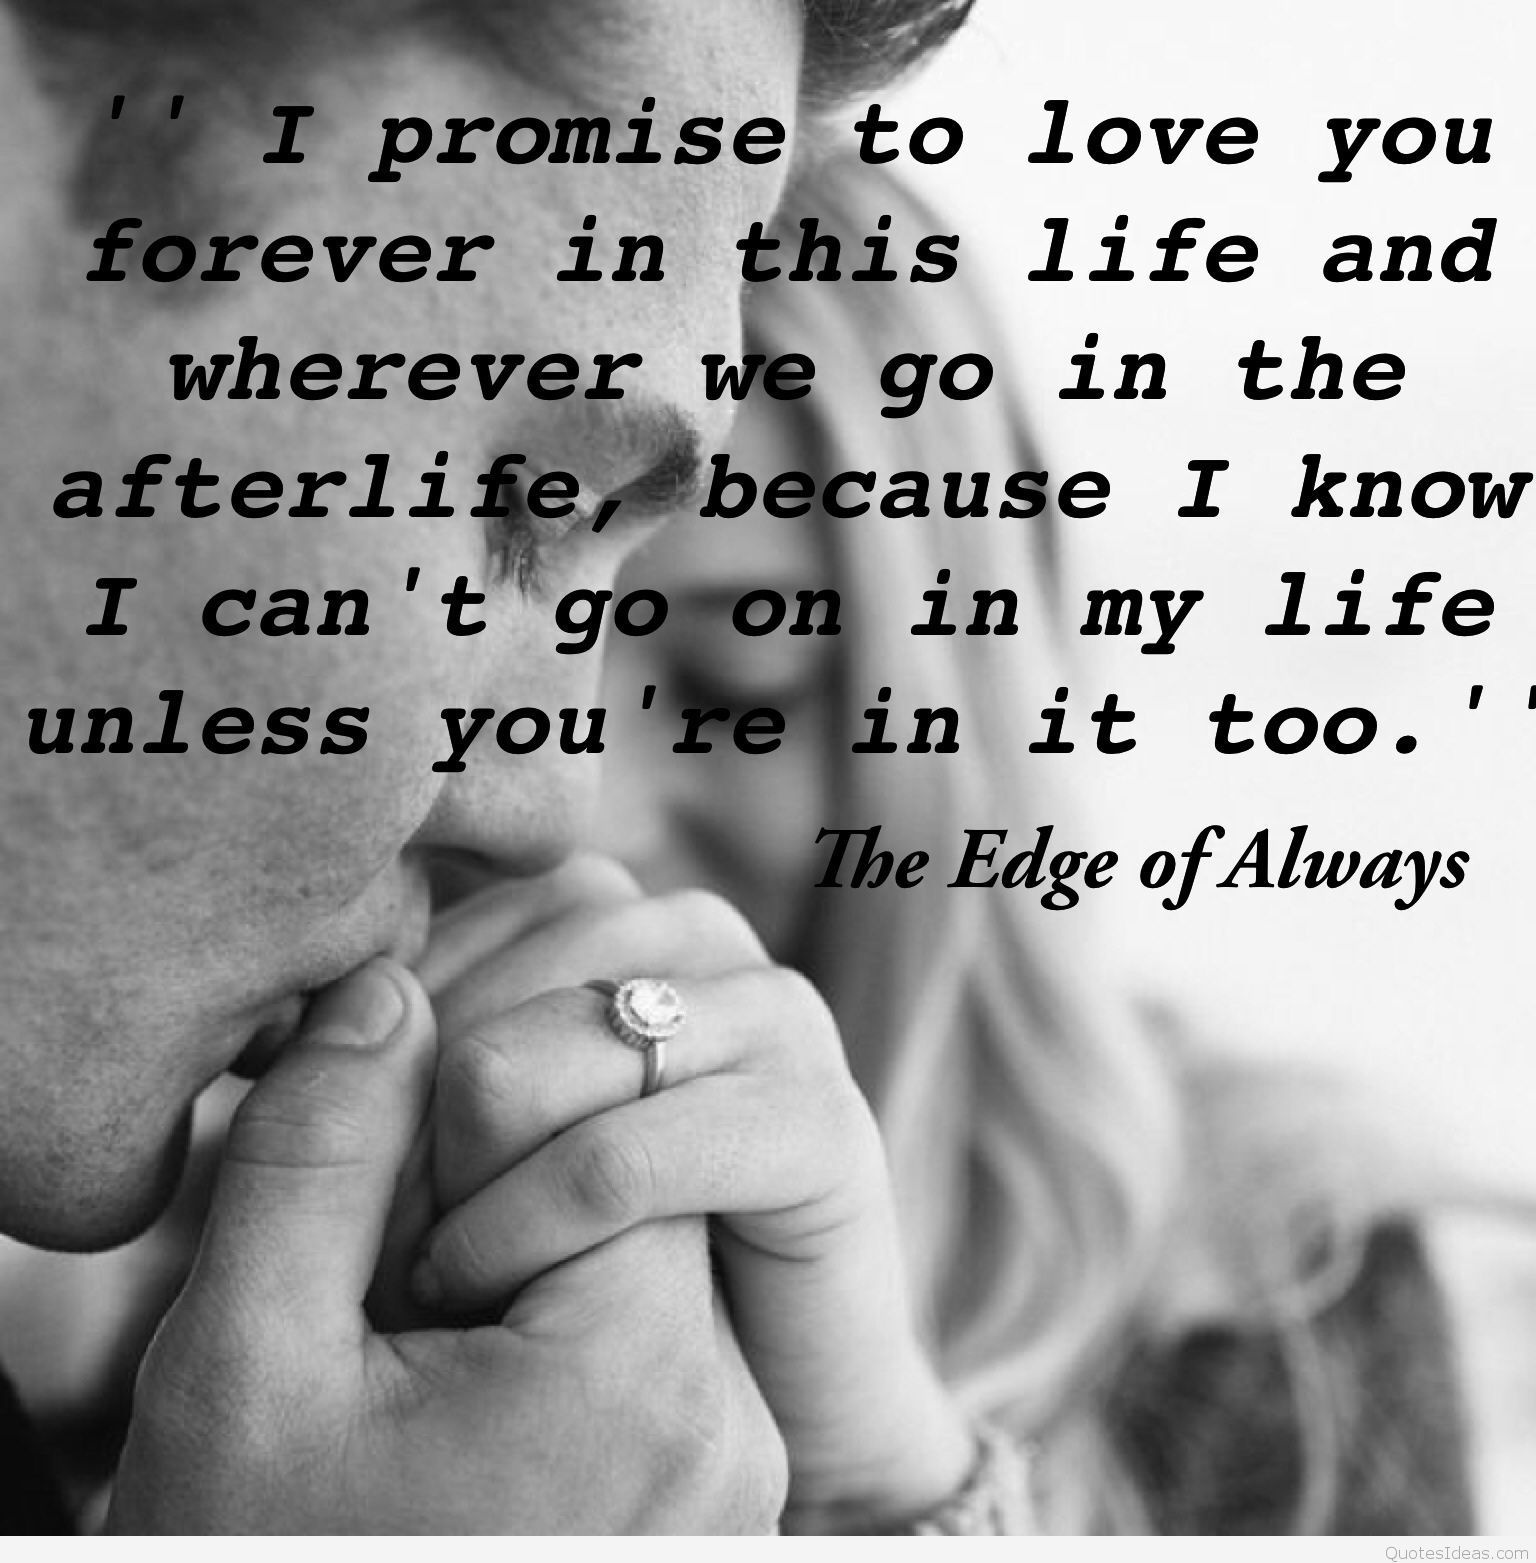 Love Quotes For Your Boyfriend Pintopgsl On Love Quotes For Boyfriend  Pinterest  Boyfriends